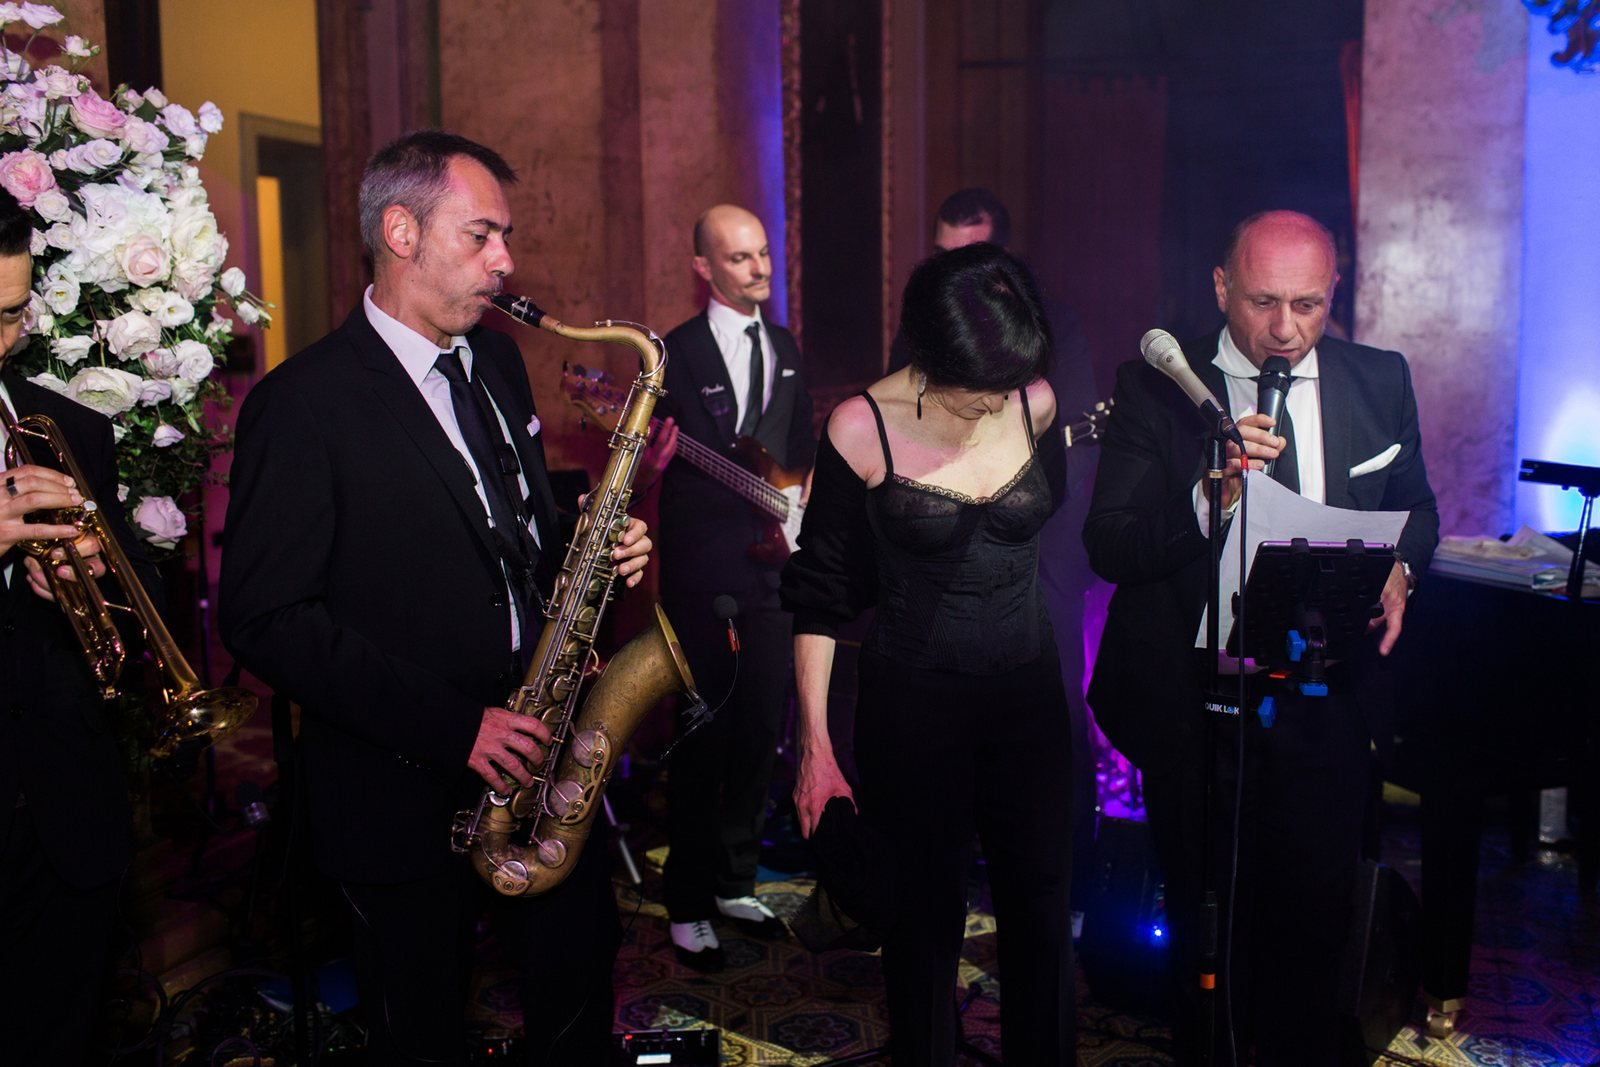 wedding music villa erba